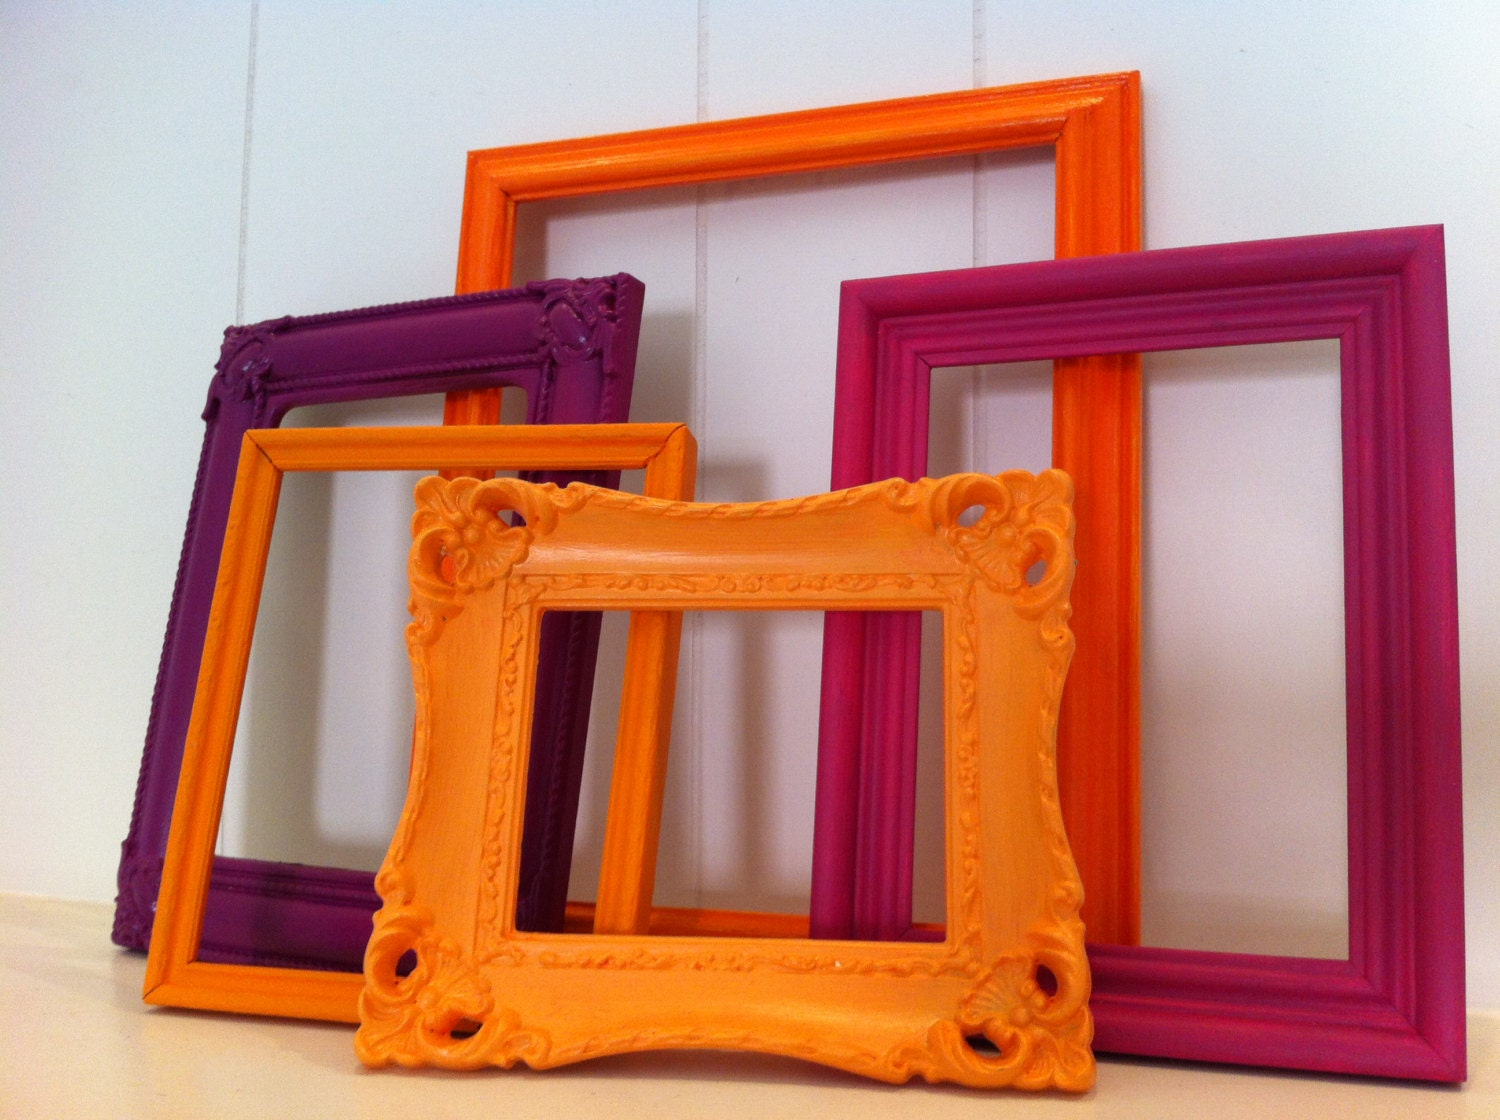 Frame collage funky bright home decor upcycled by fefifofun for Funky home decor